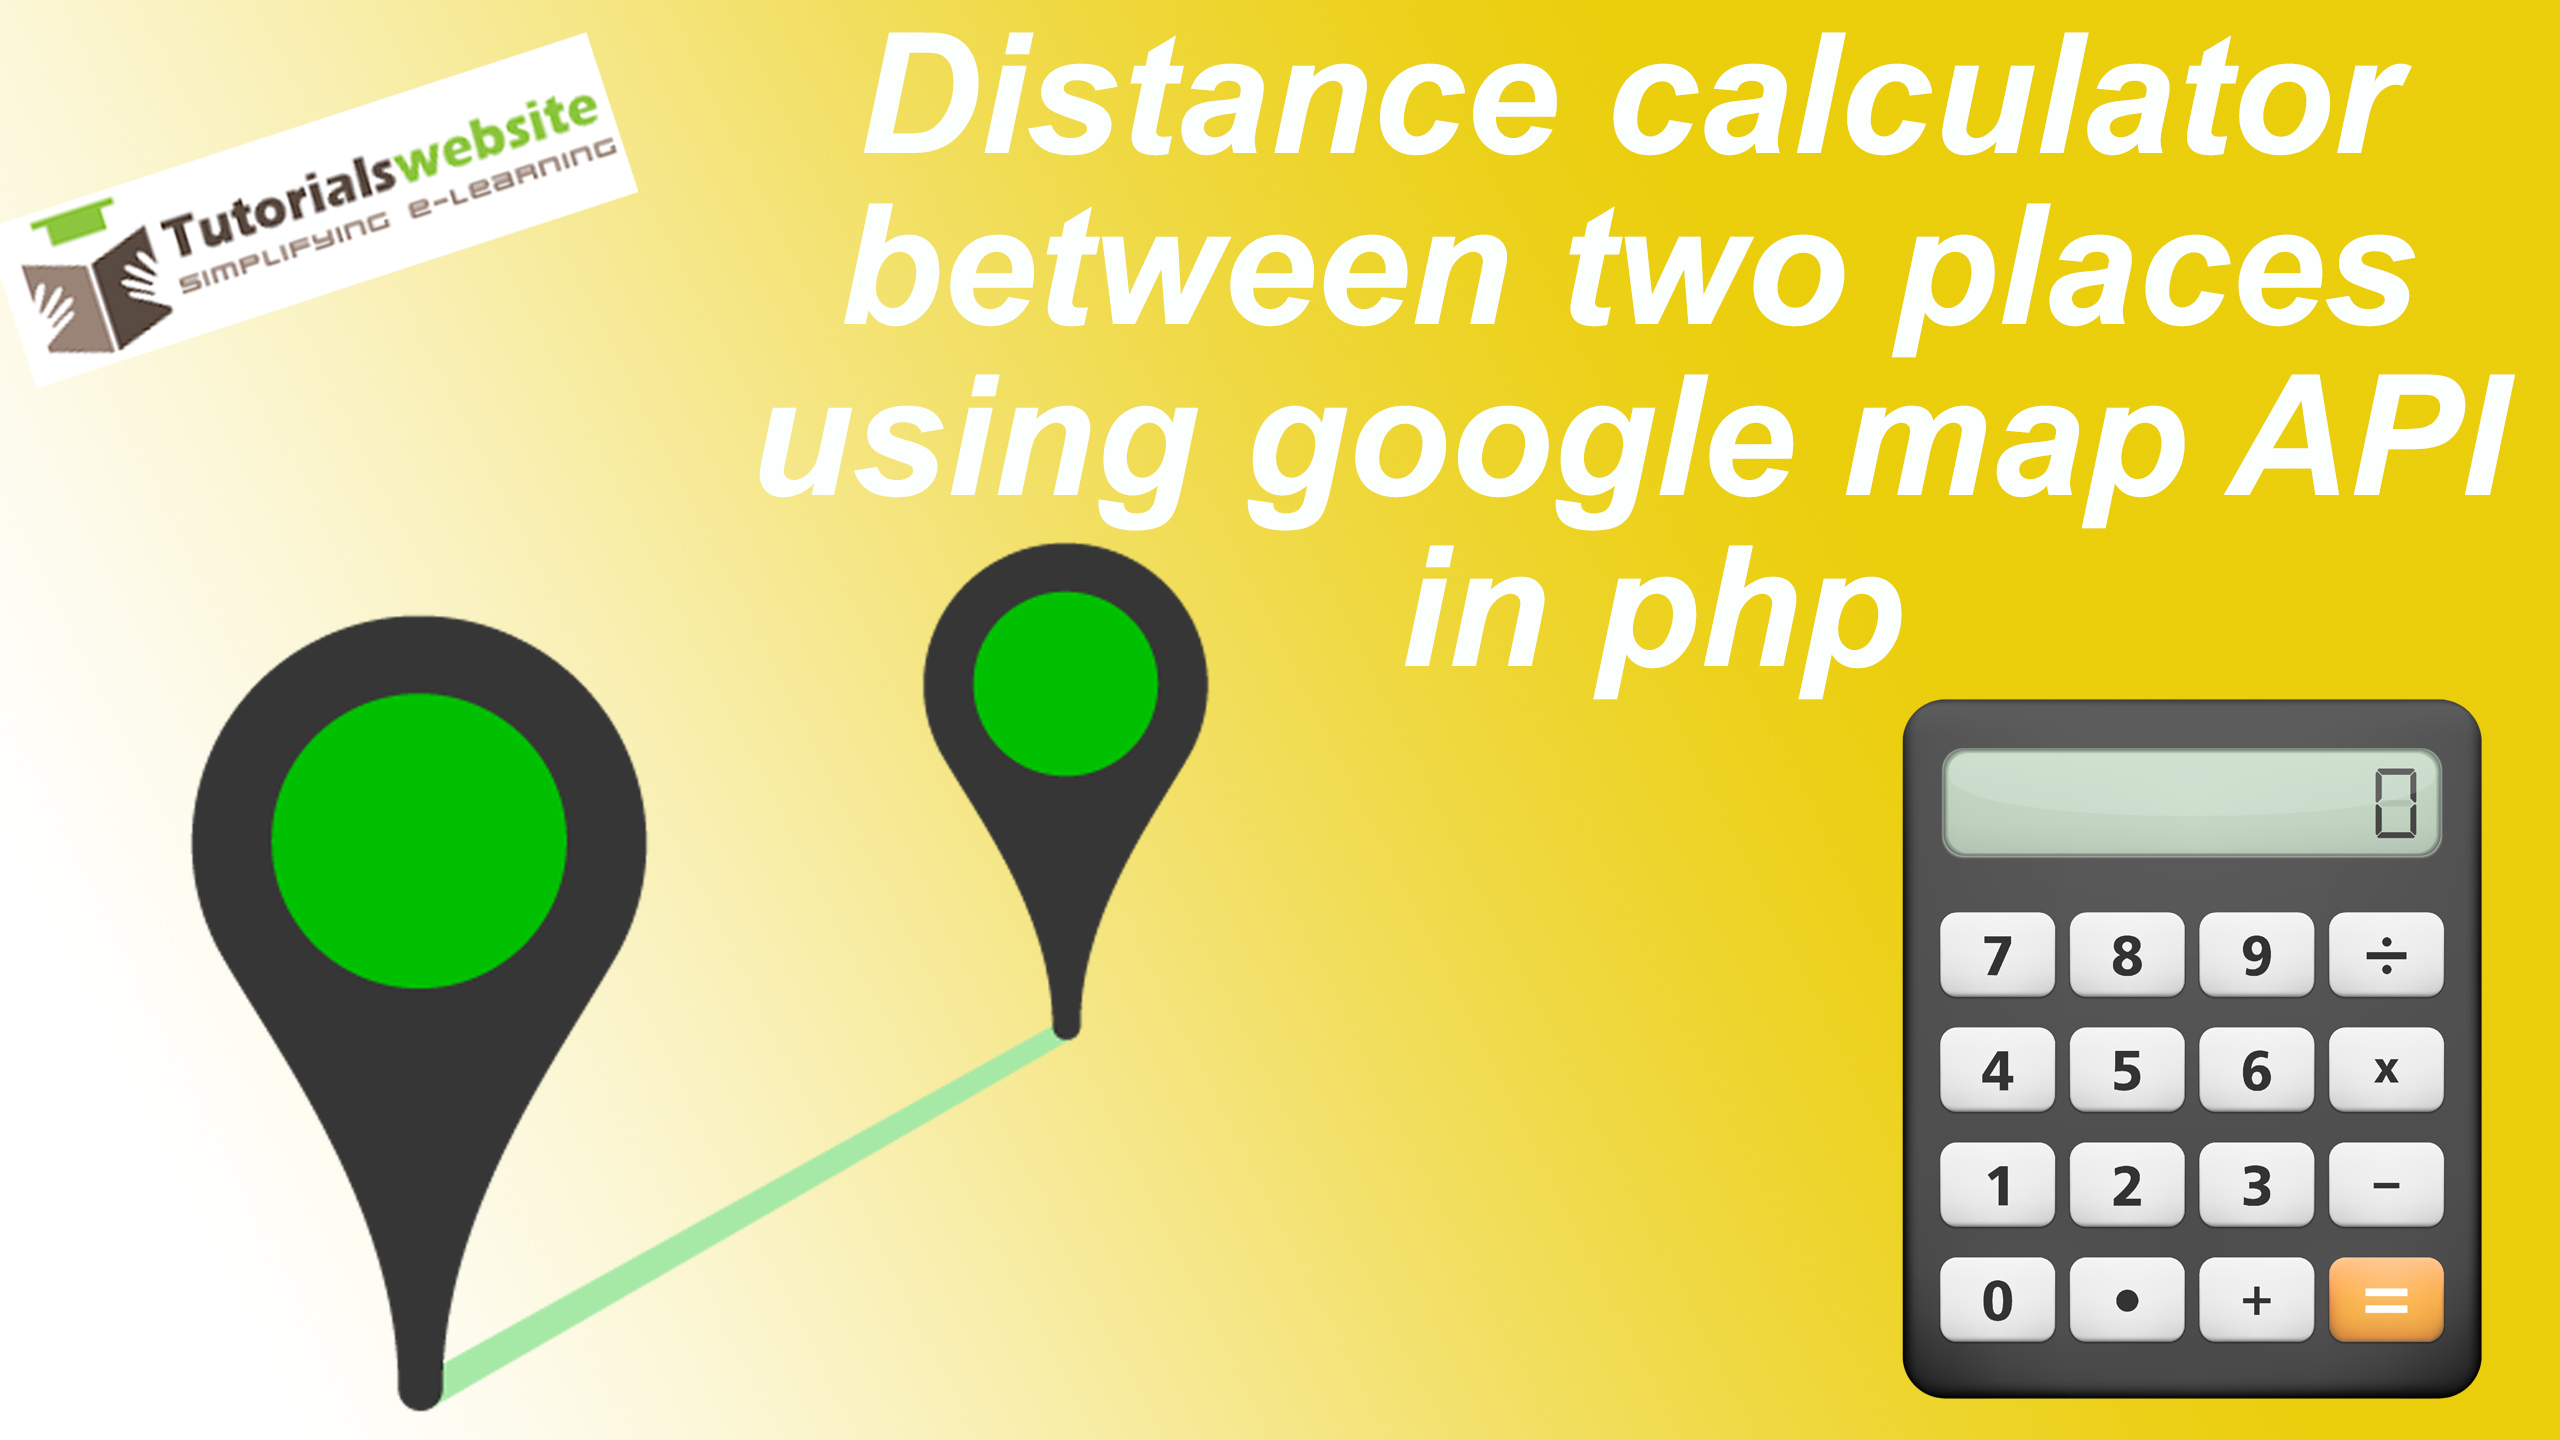 Distance calculator between two places using google map API in php